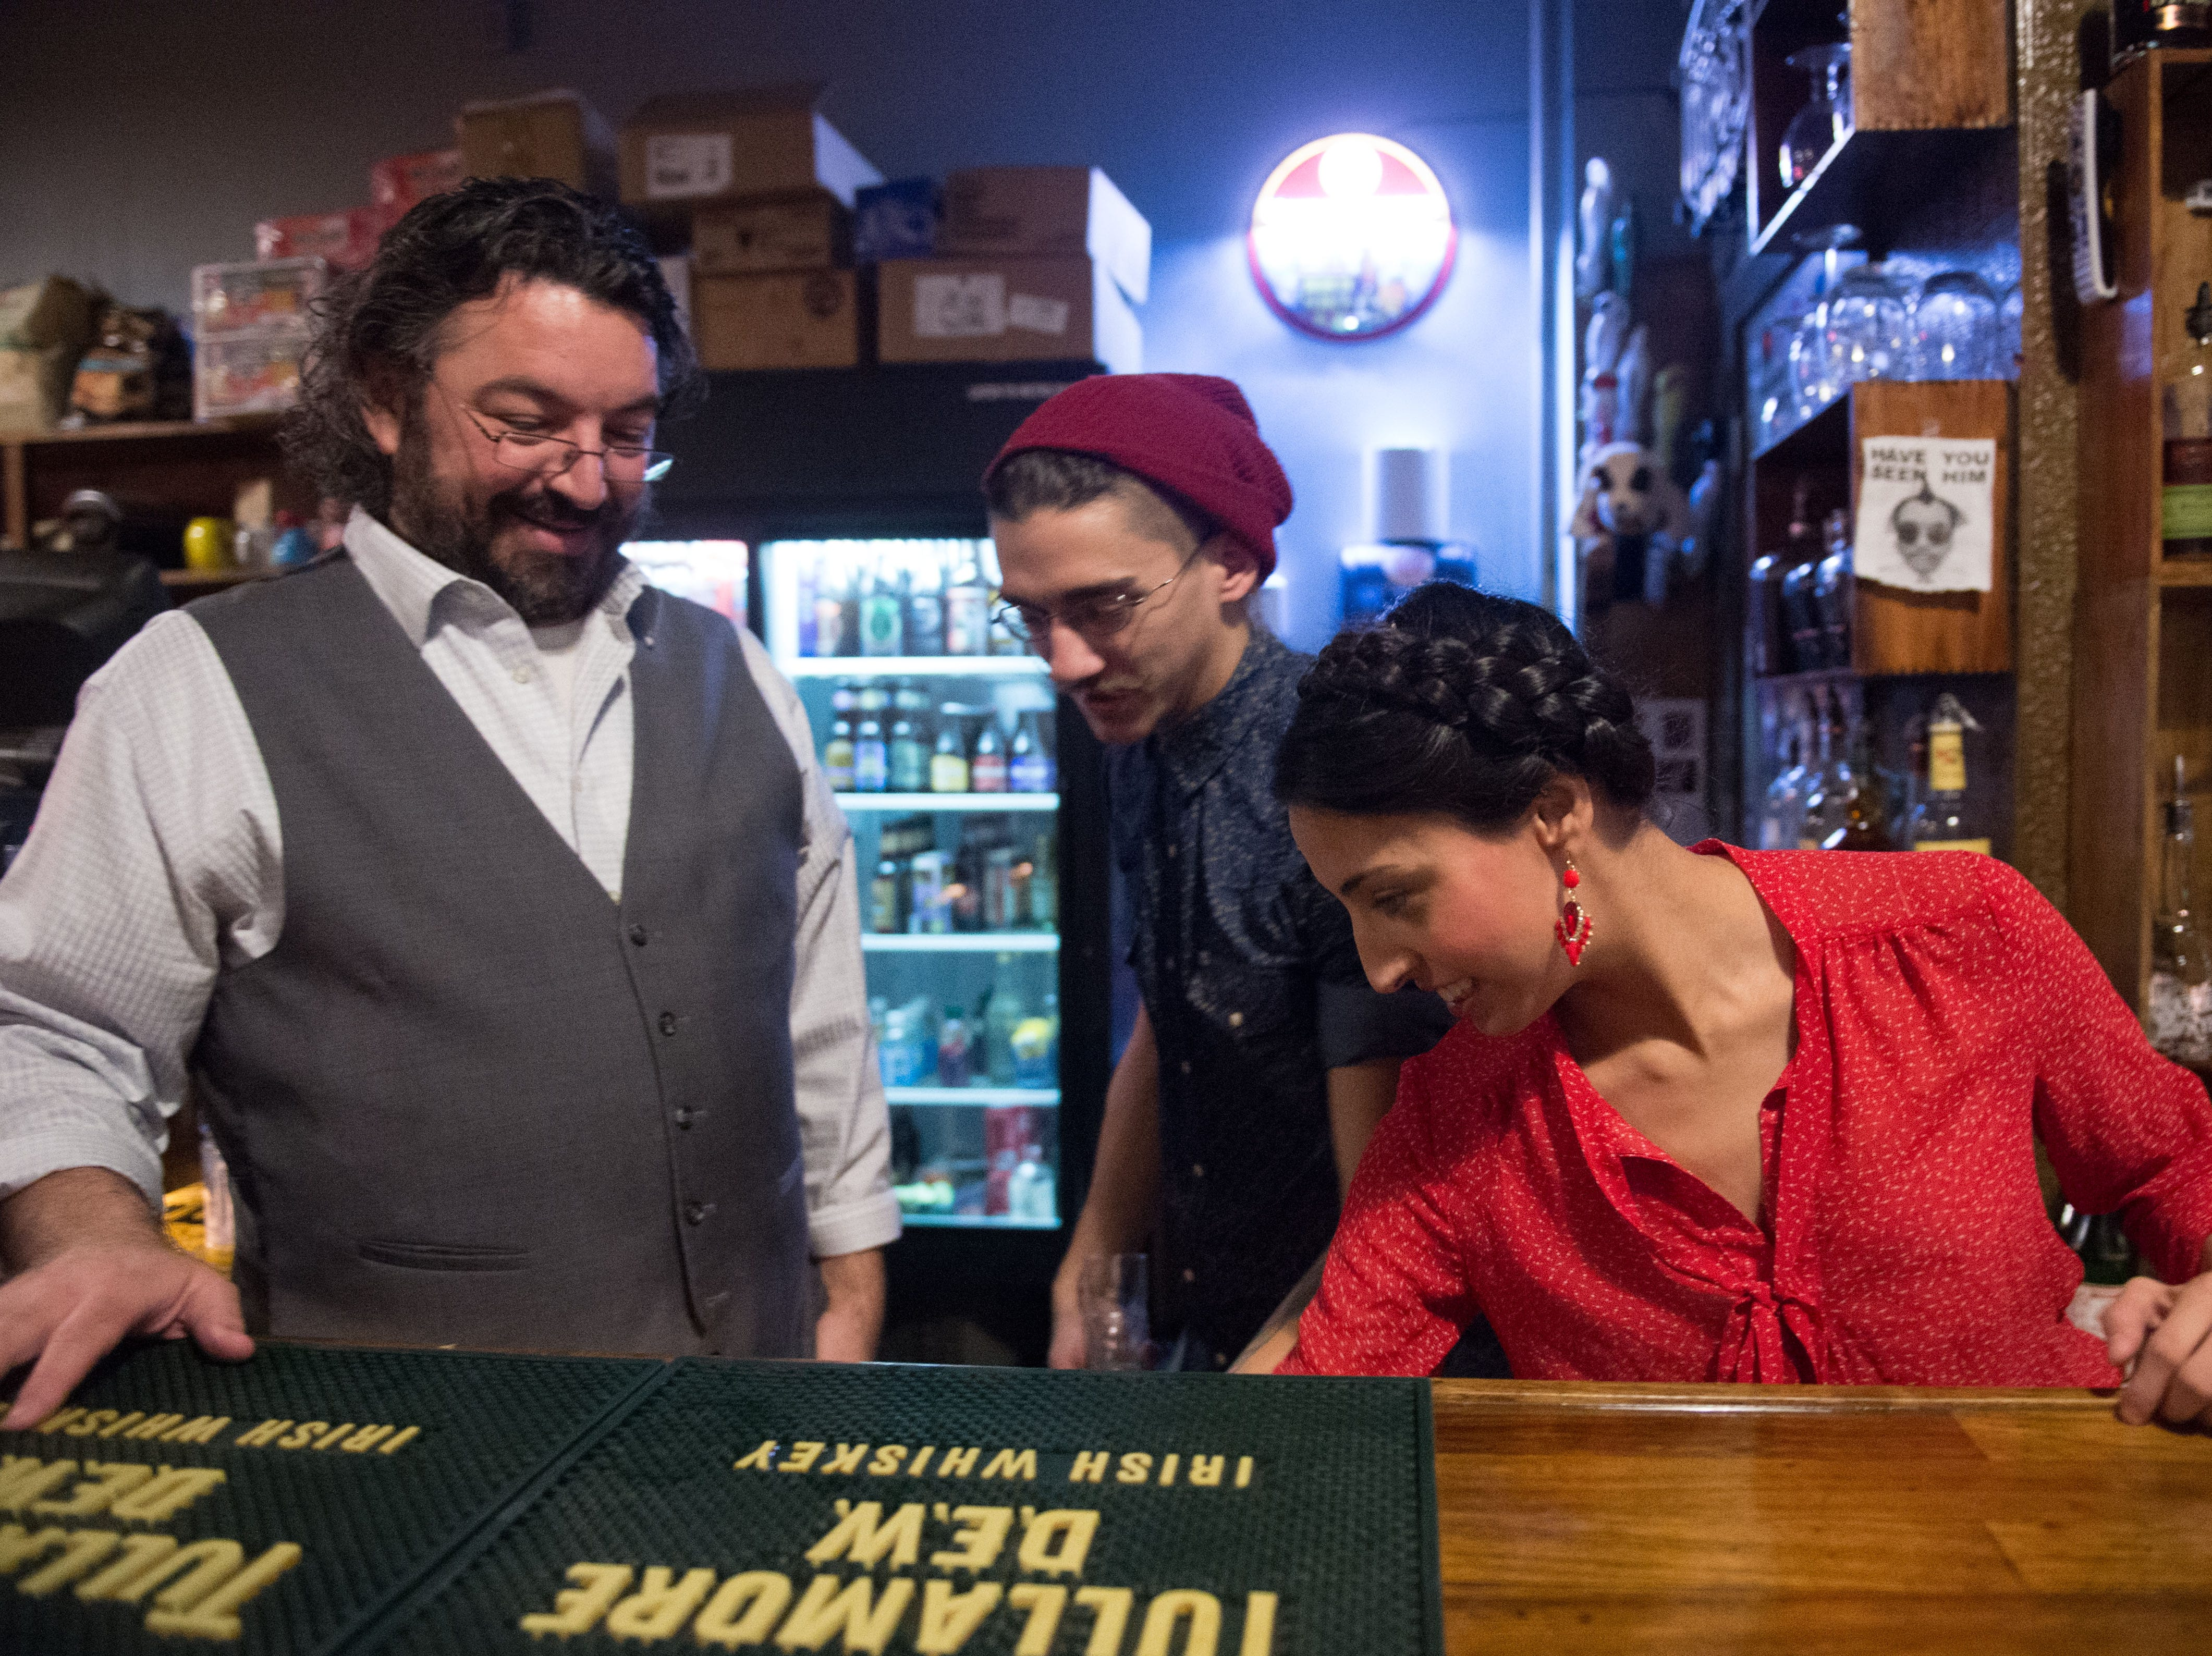 Stanton Webster, George Talley, and Katheryn Hamlett tend the bar at Suttrees on New Year's Eve.